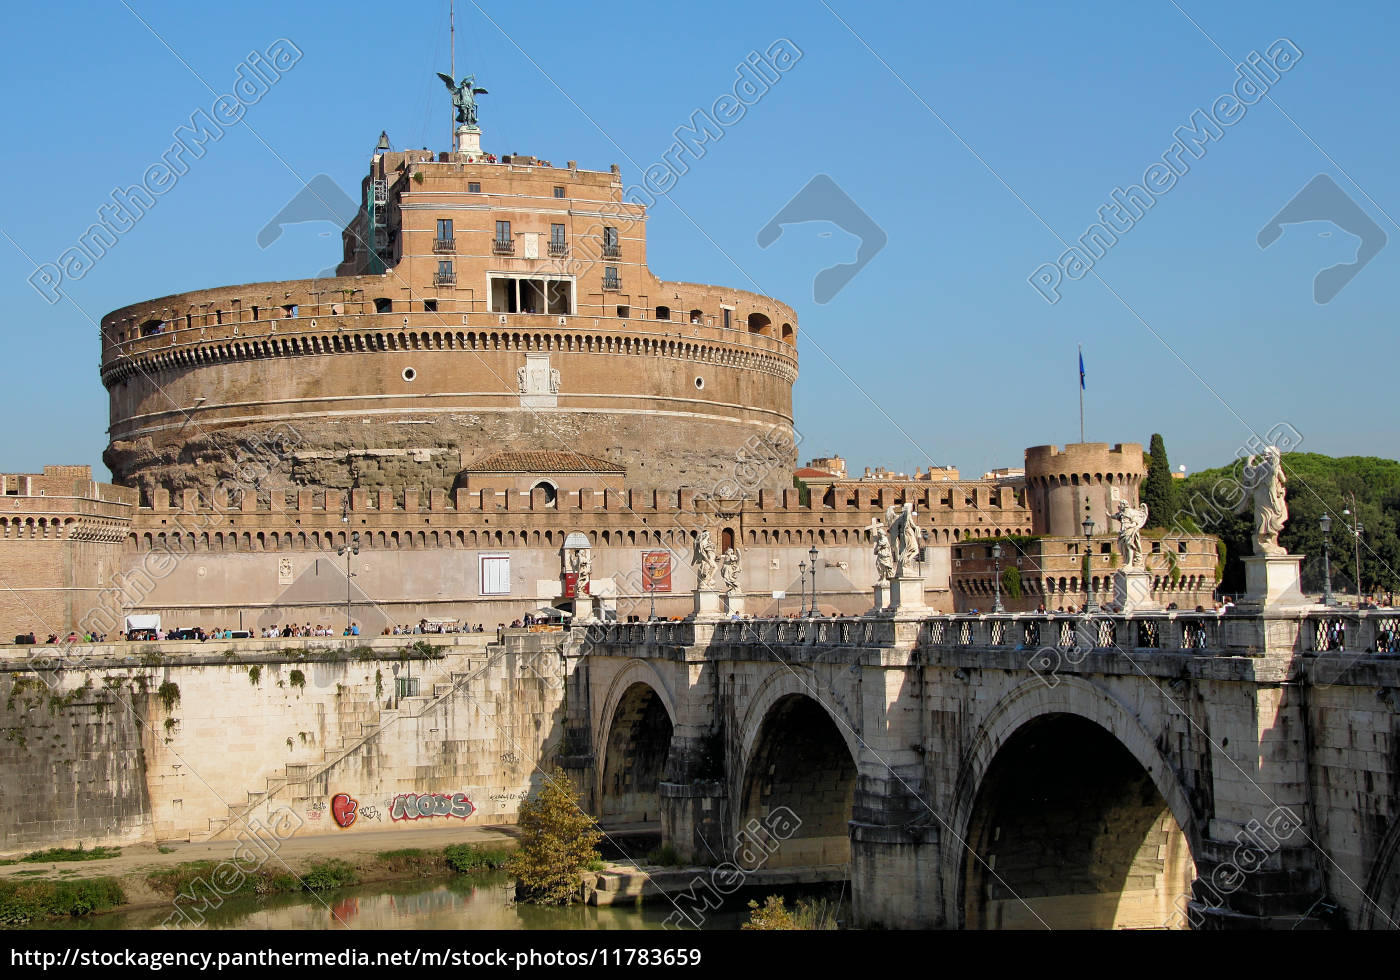 castel, sant'angelo, and, angel, bridge, rome - 11783659